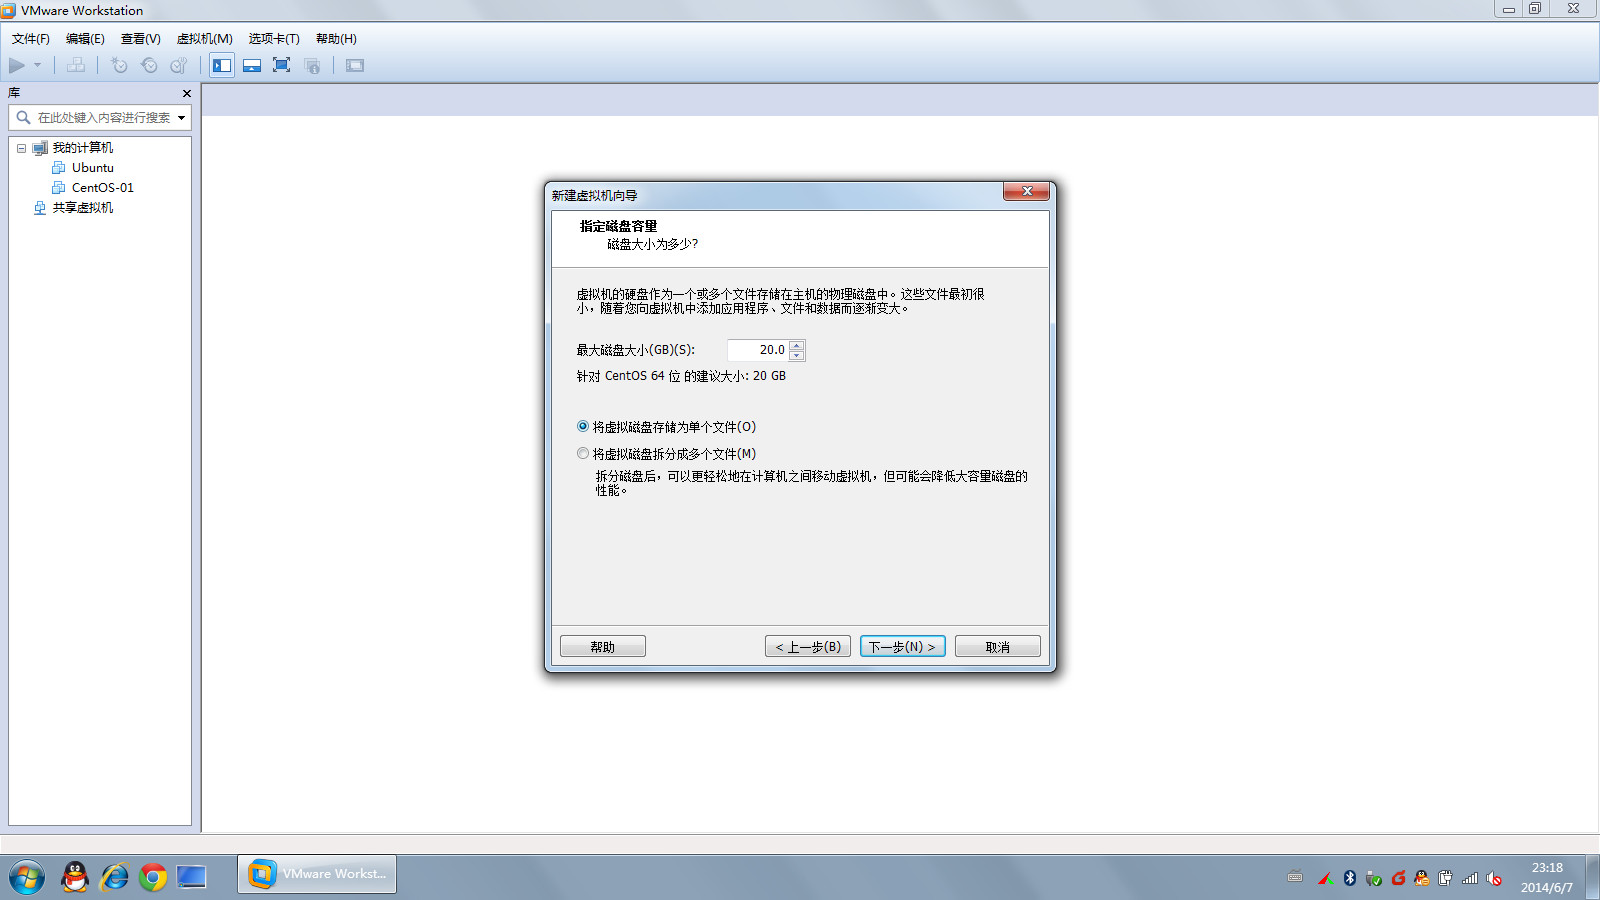 vmware workstation安装centos 6.5详细步骤